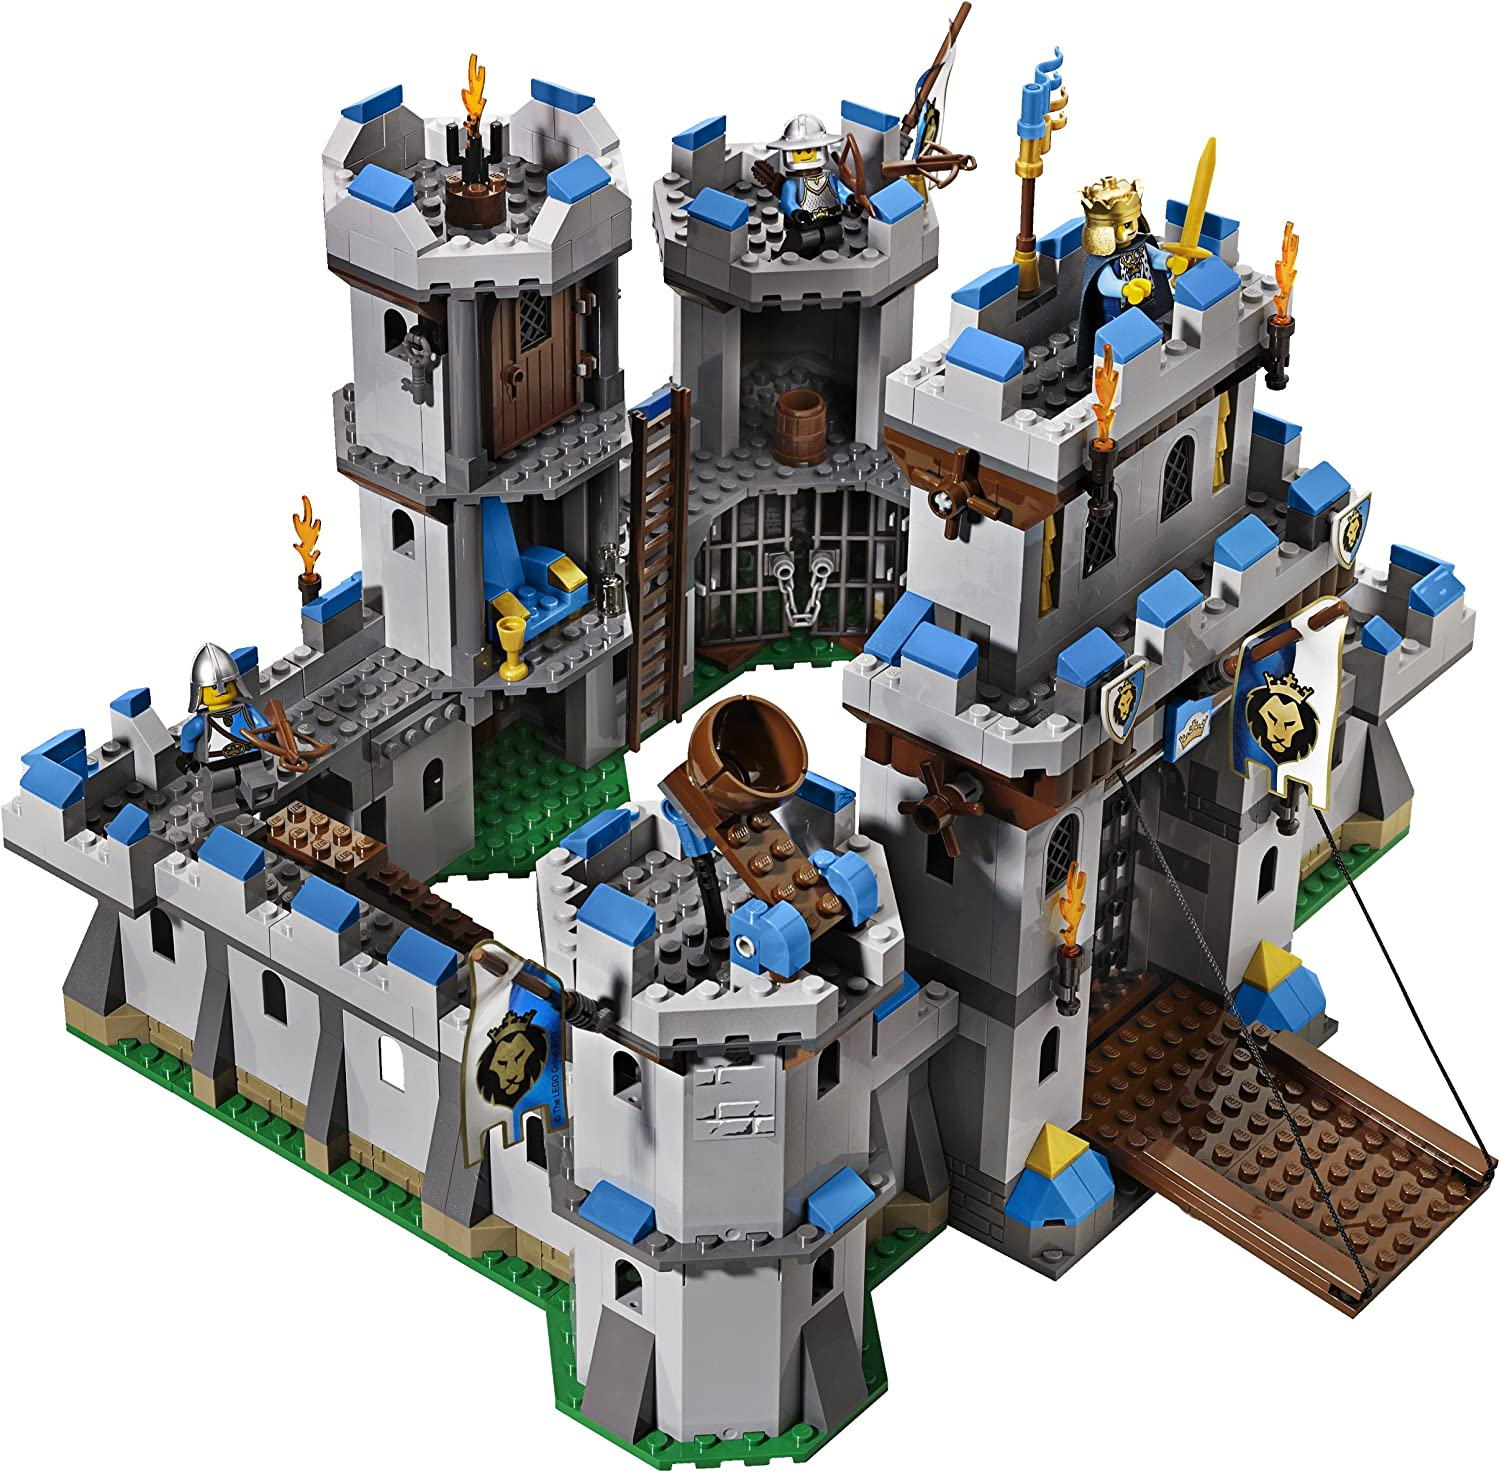 LEGO Kings Castle (70404) (Discontinued by manufacturer)